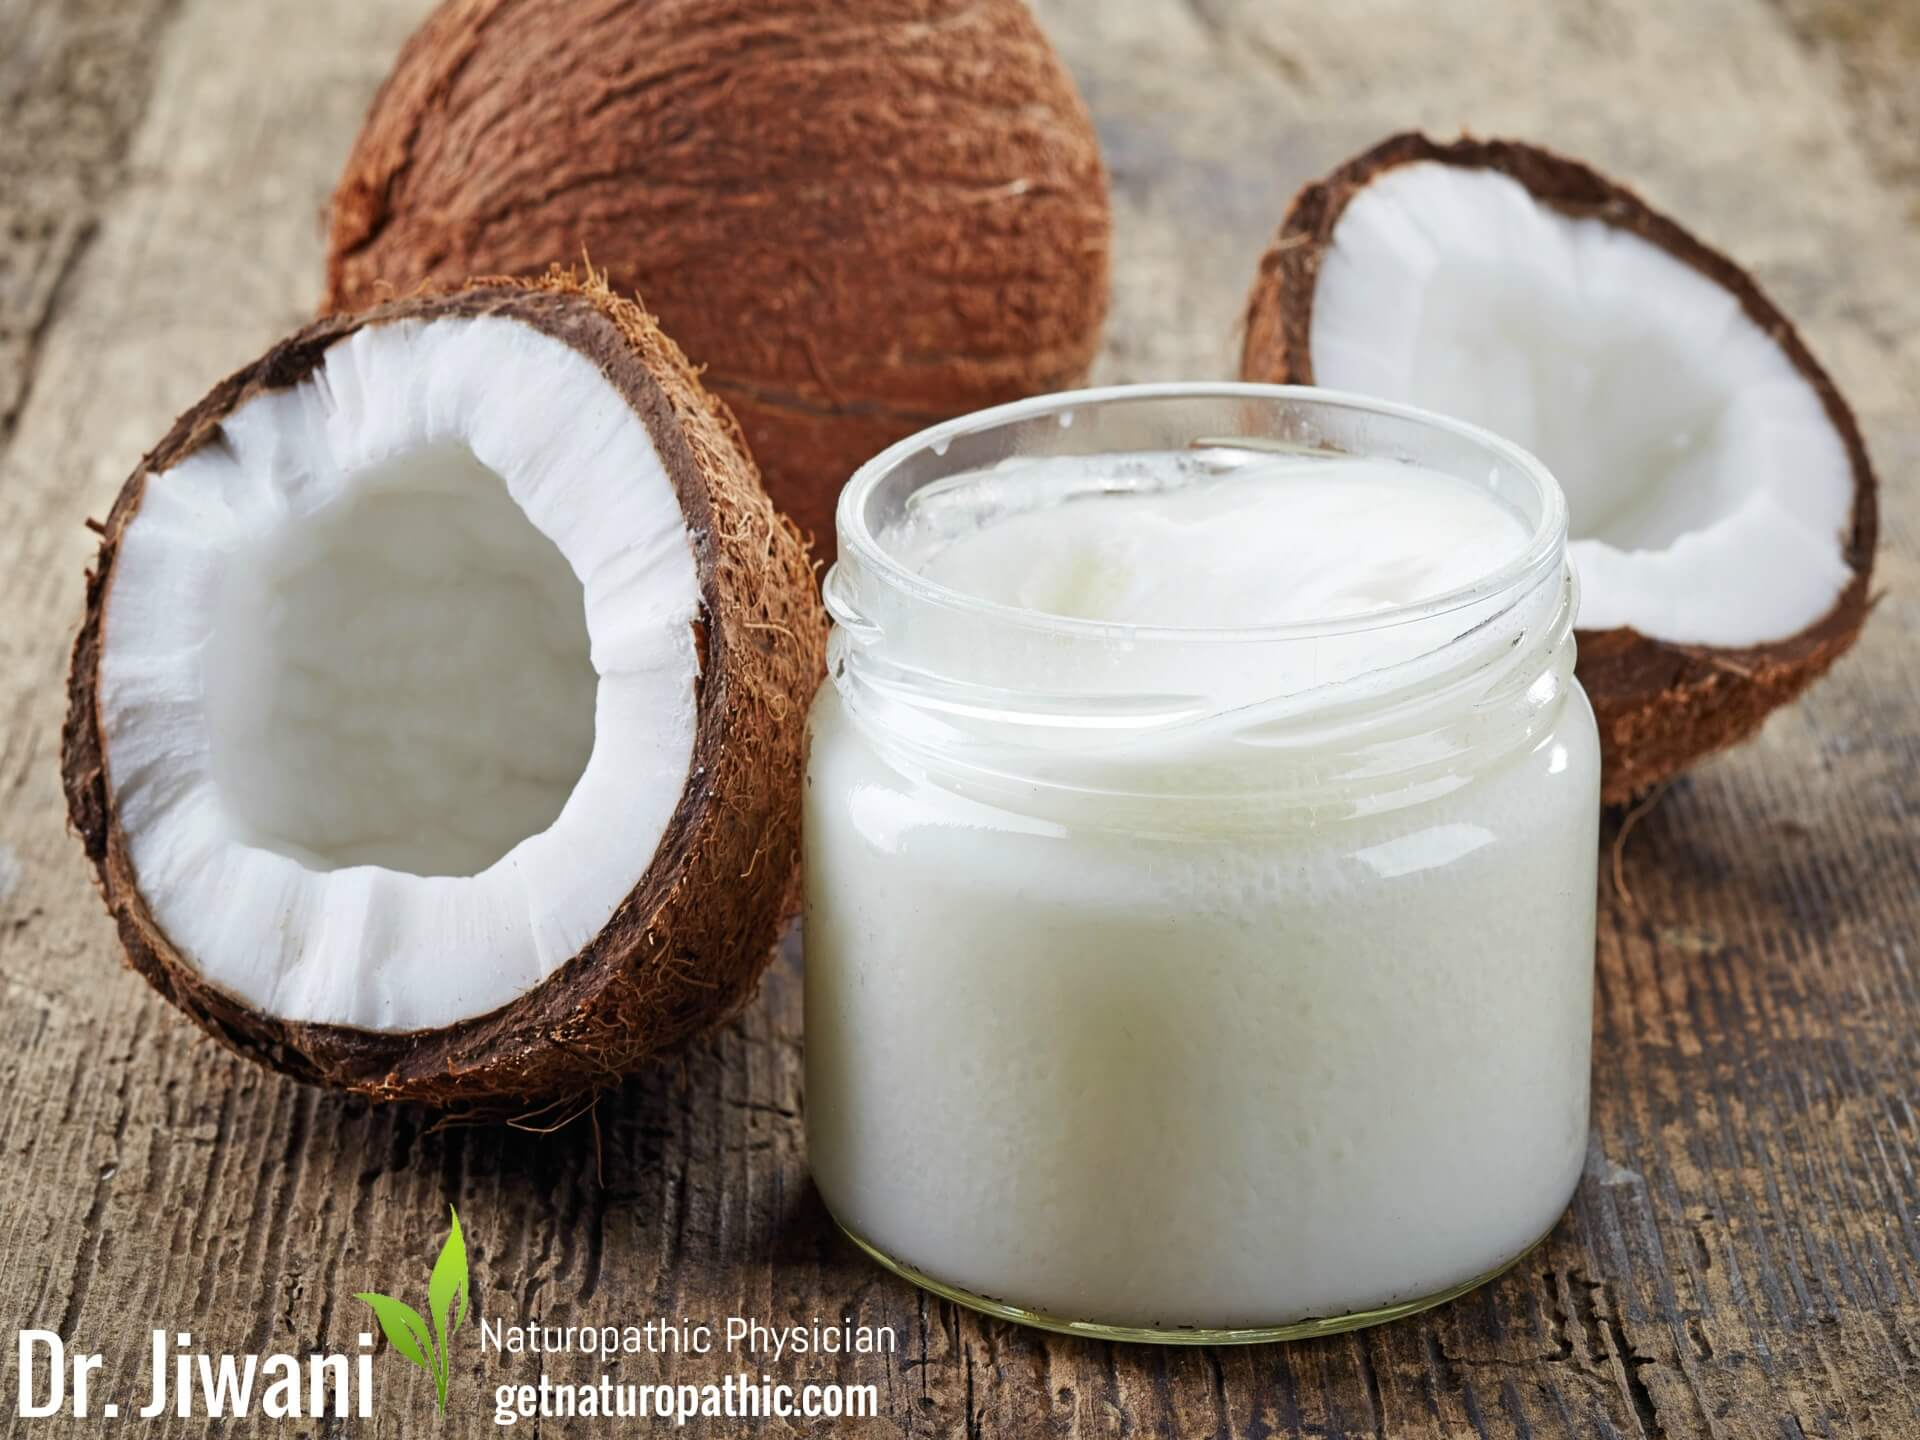 Is Coconut Oil Good or Bad For You?  Truths & Deceptions About This Tropical Fat   Dr. Jiwani's Naturopathic Nuggets Blog